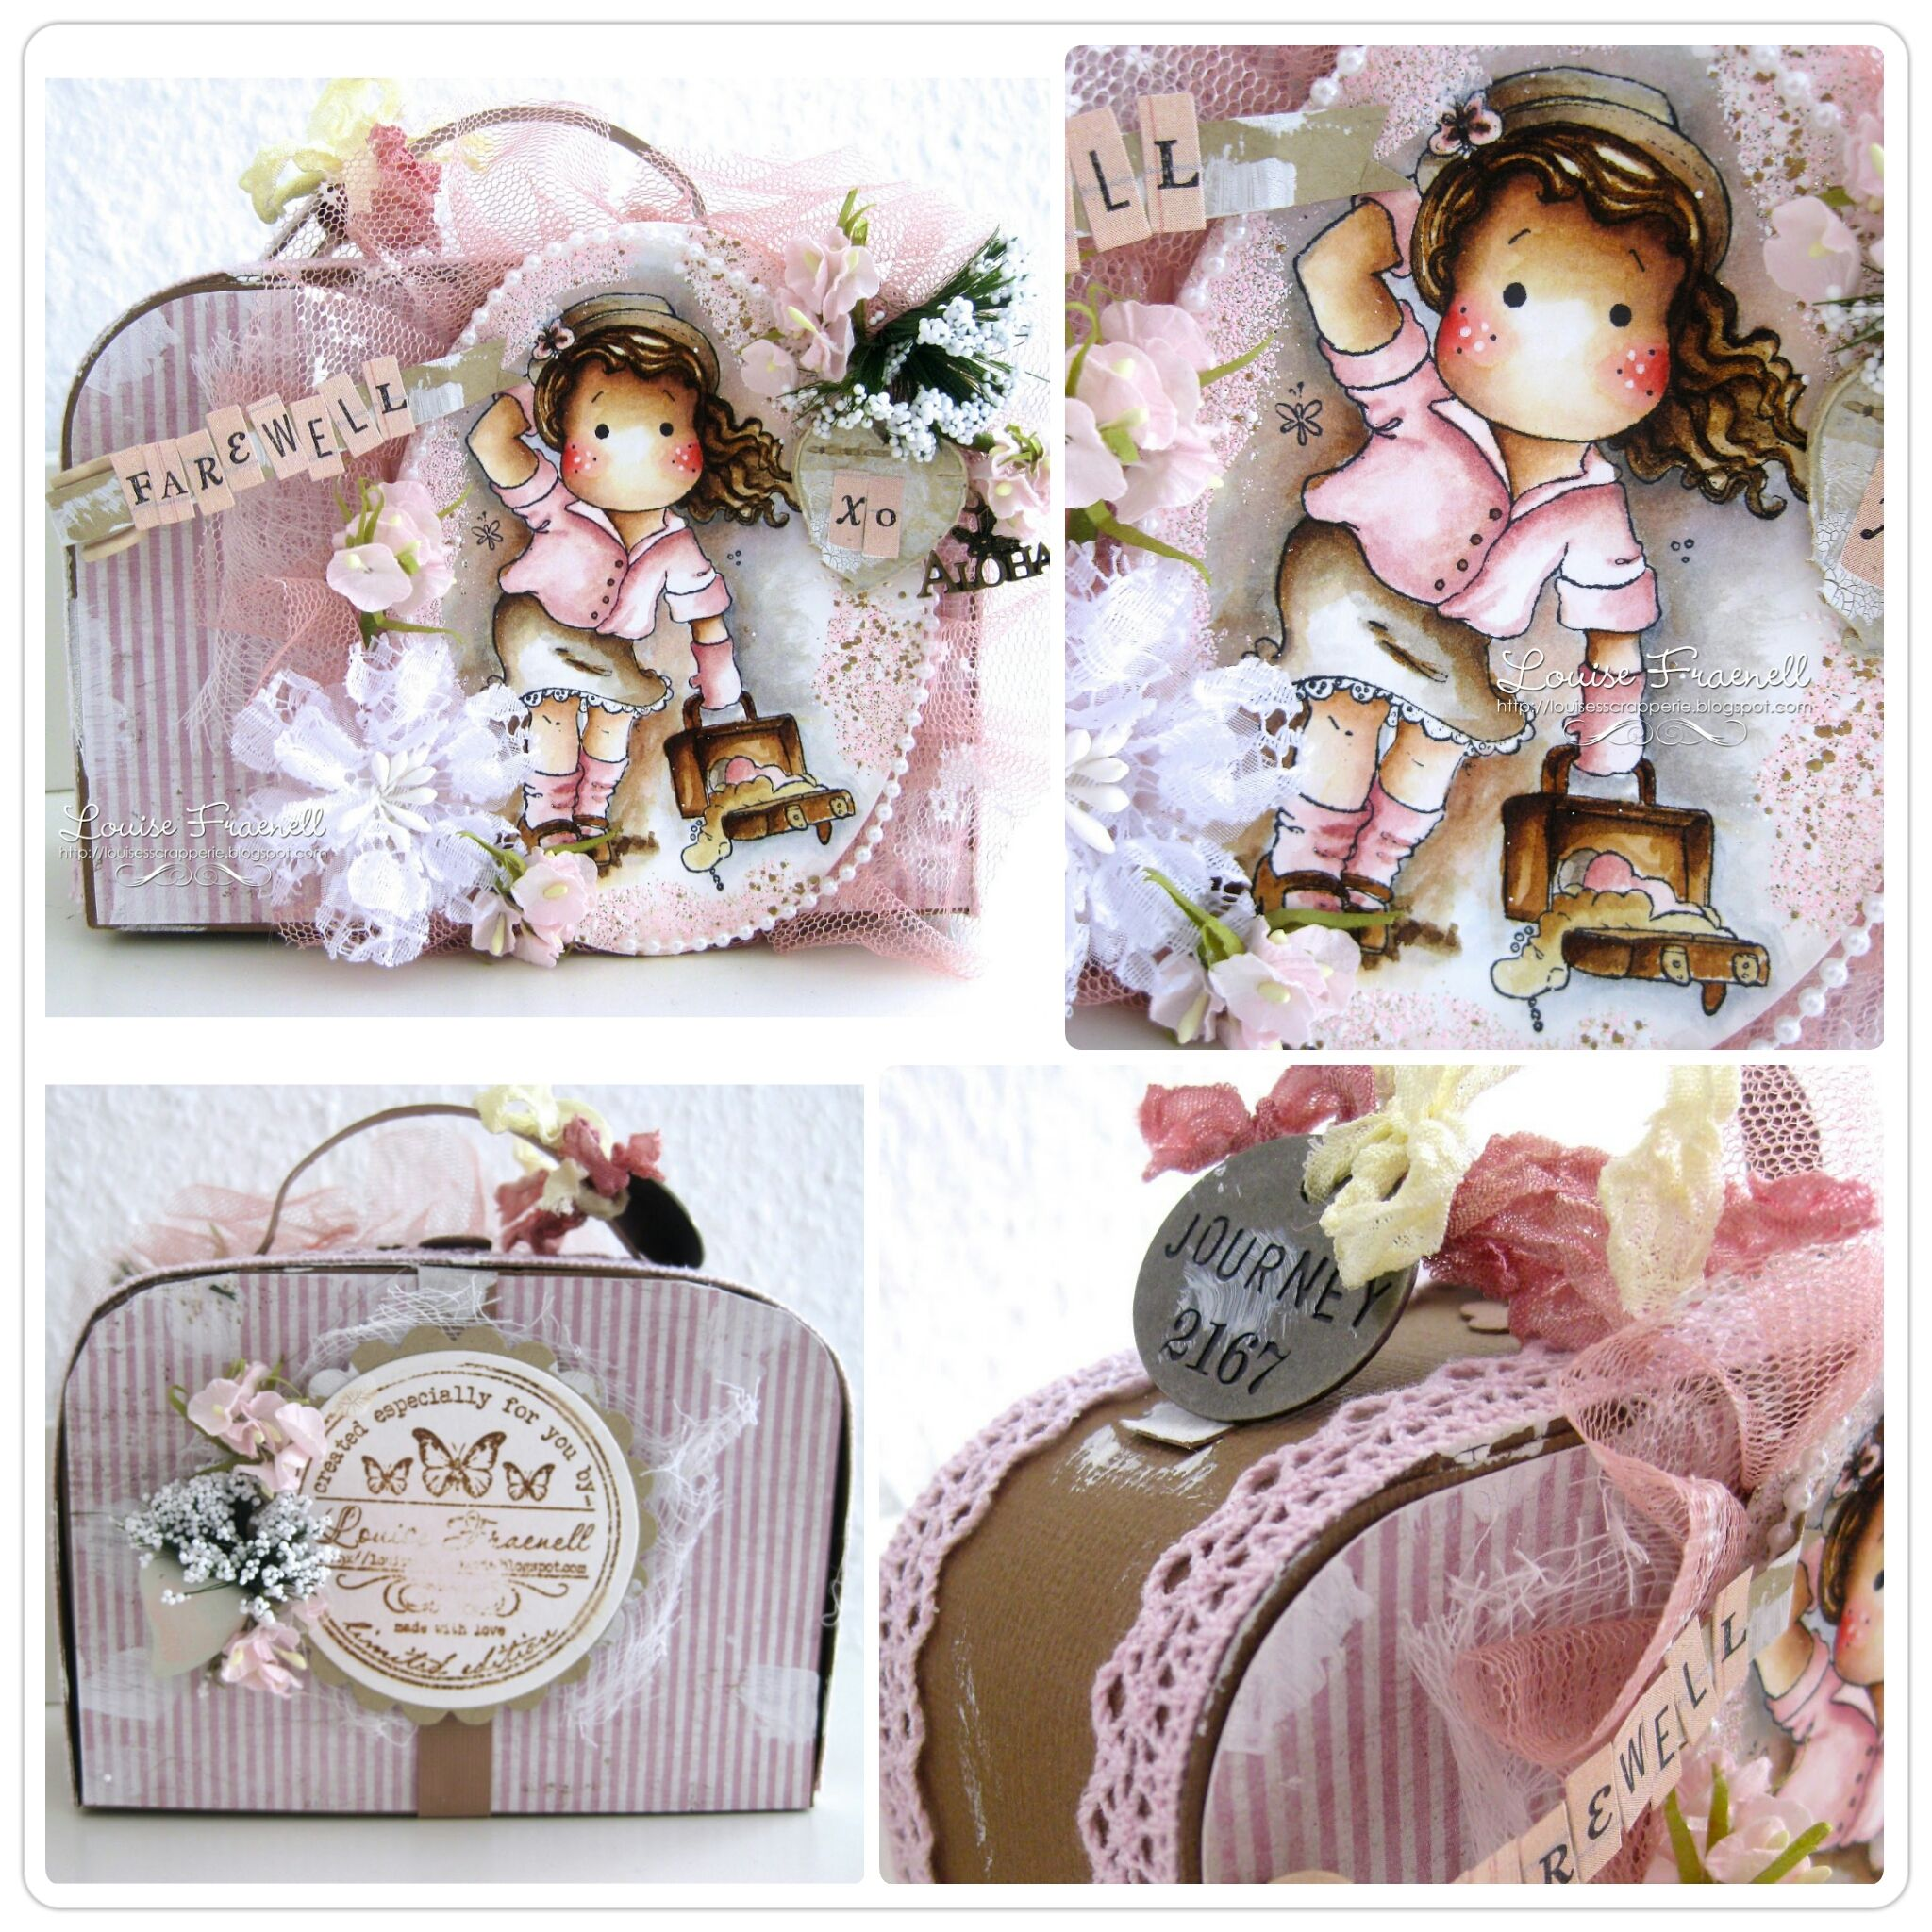 Suitcase Project By Llc Dt Member Louise Fraenell, Using Papers